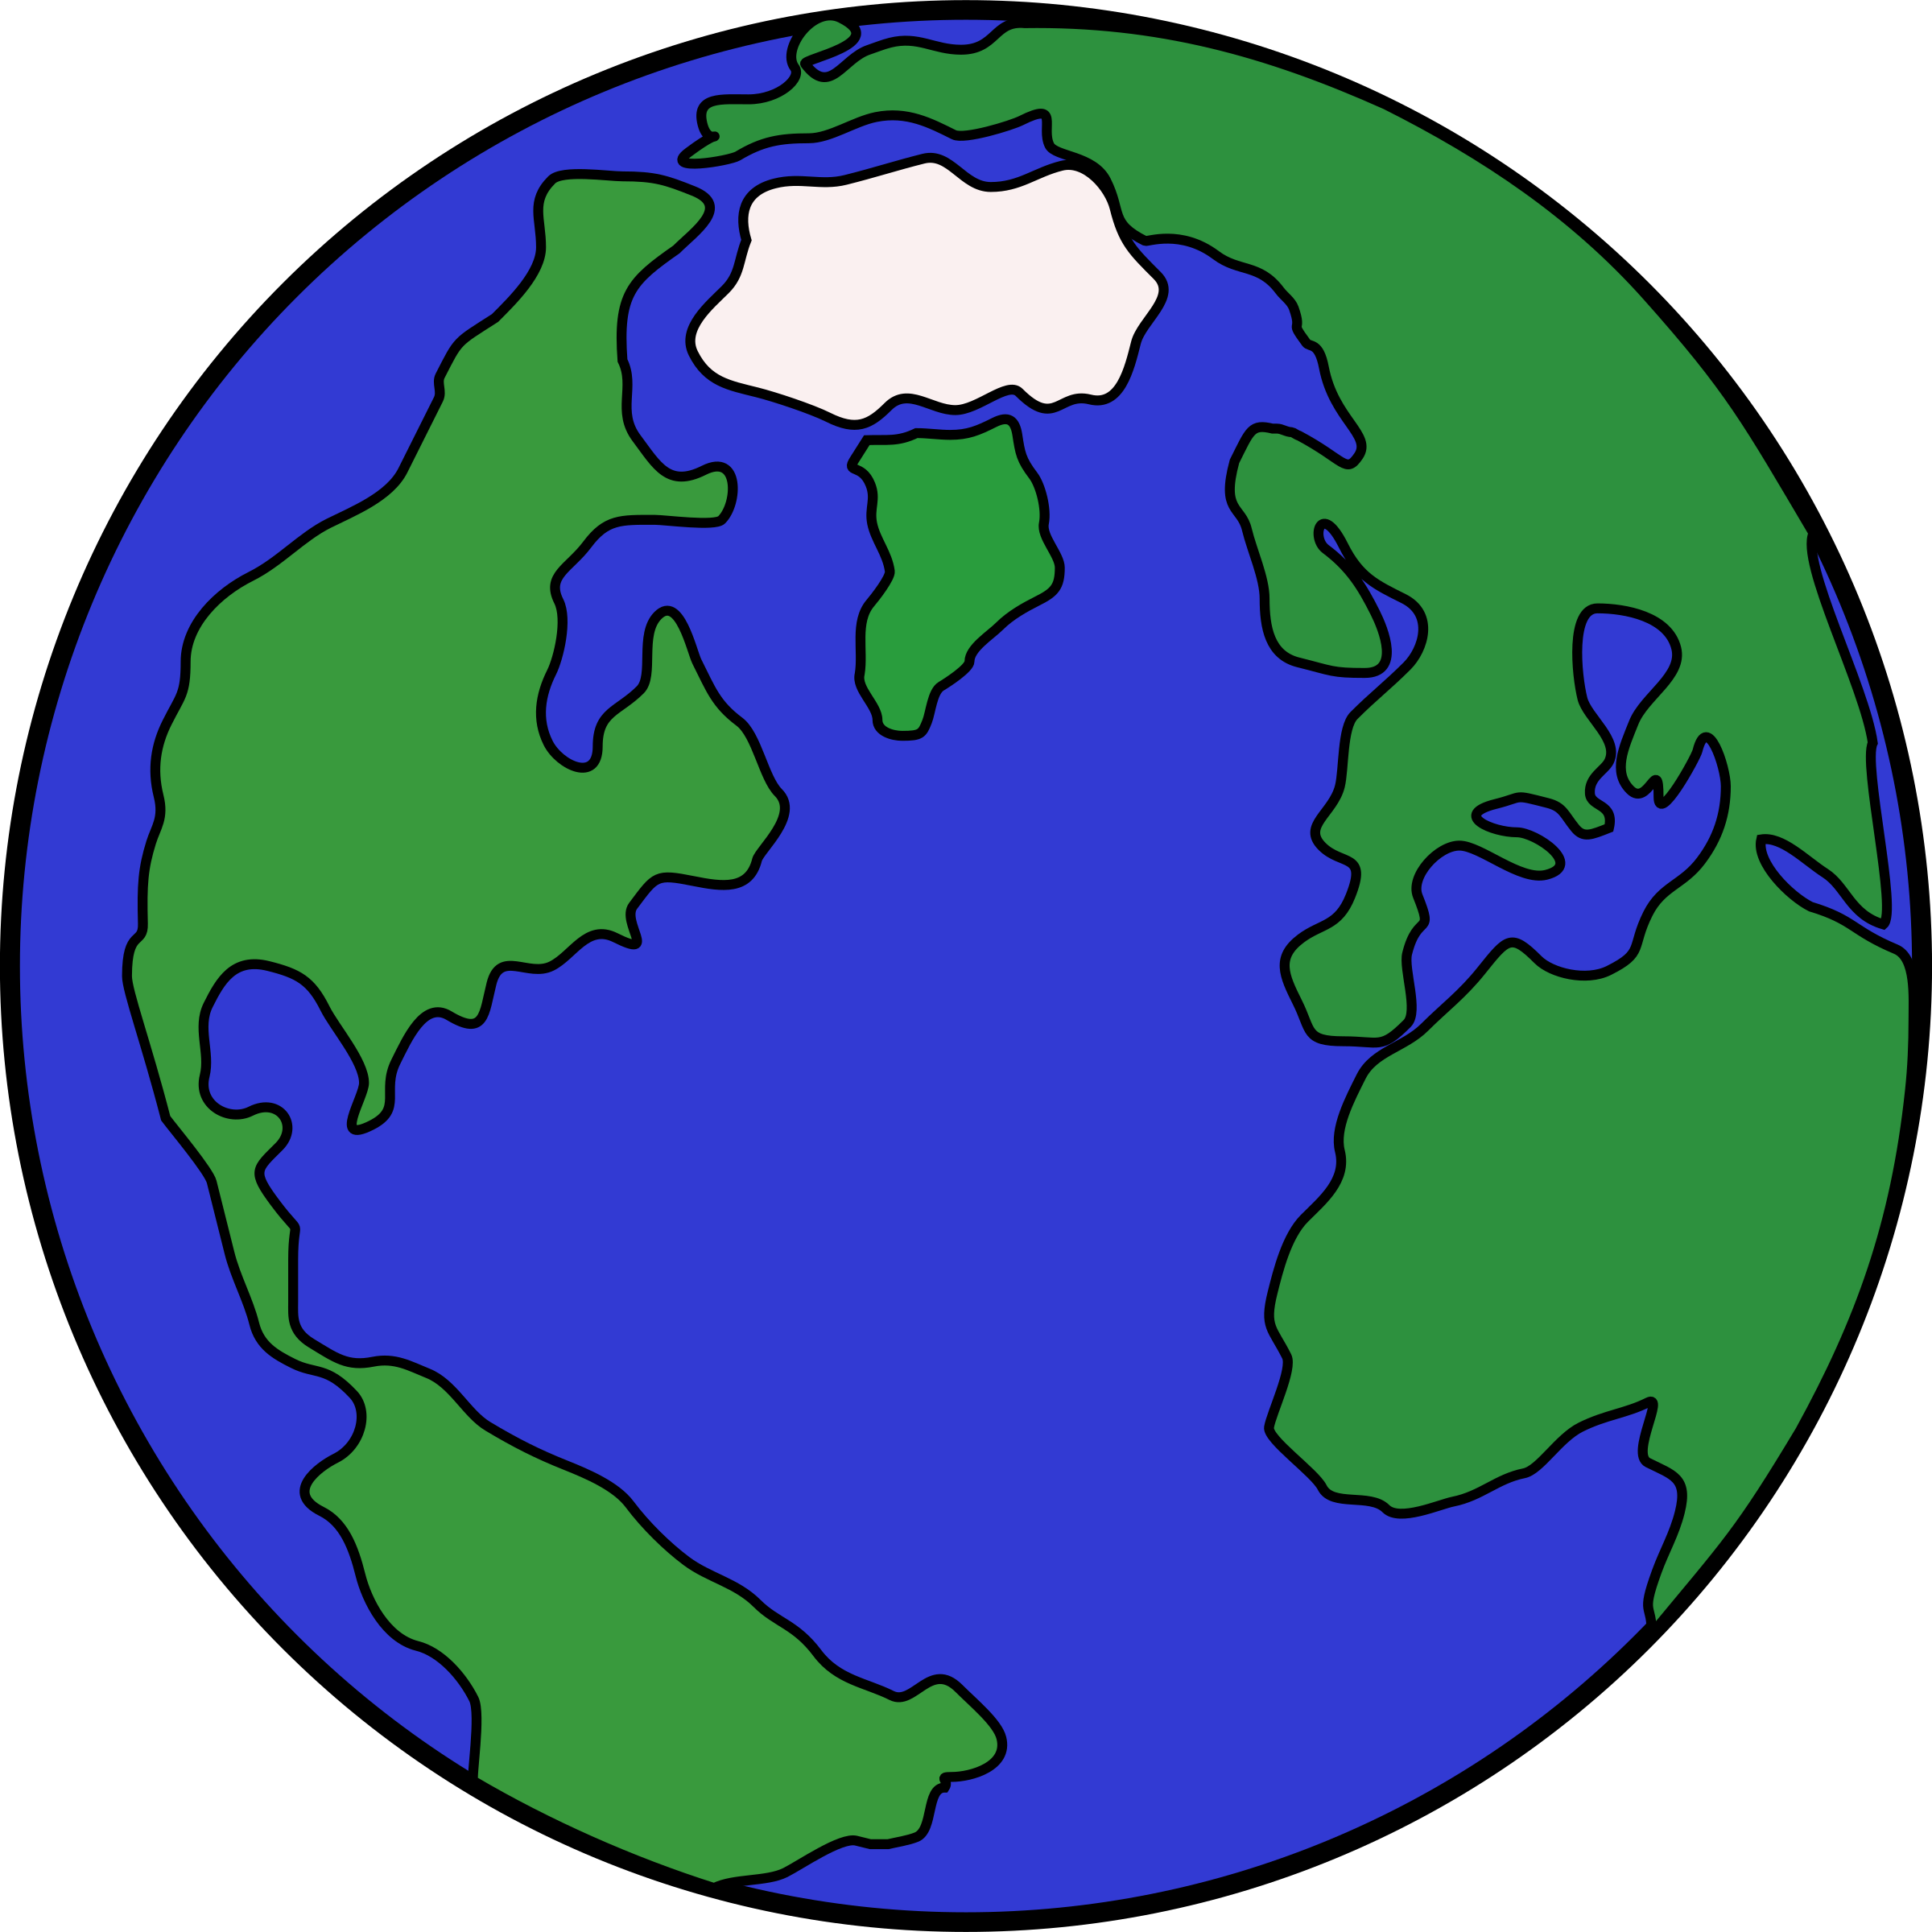 2400x2400 Planet Clip Art Hostted 2